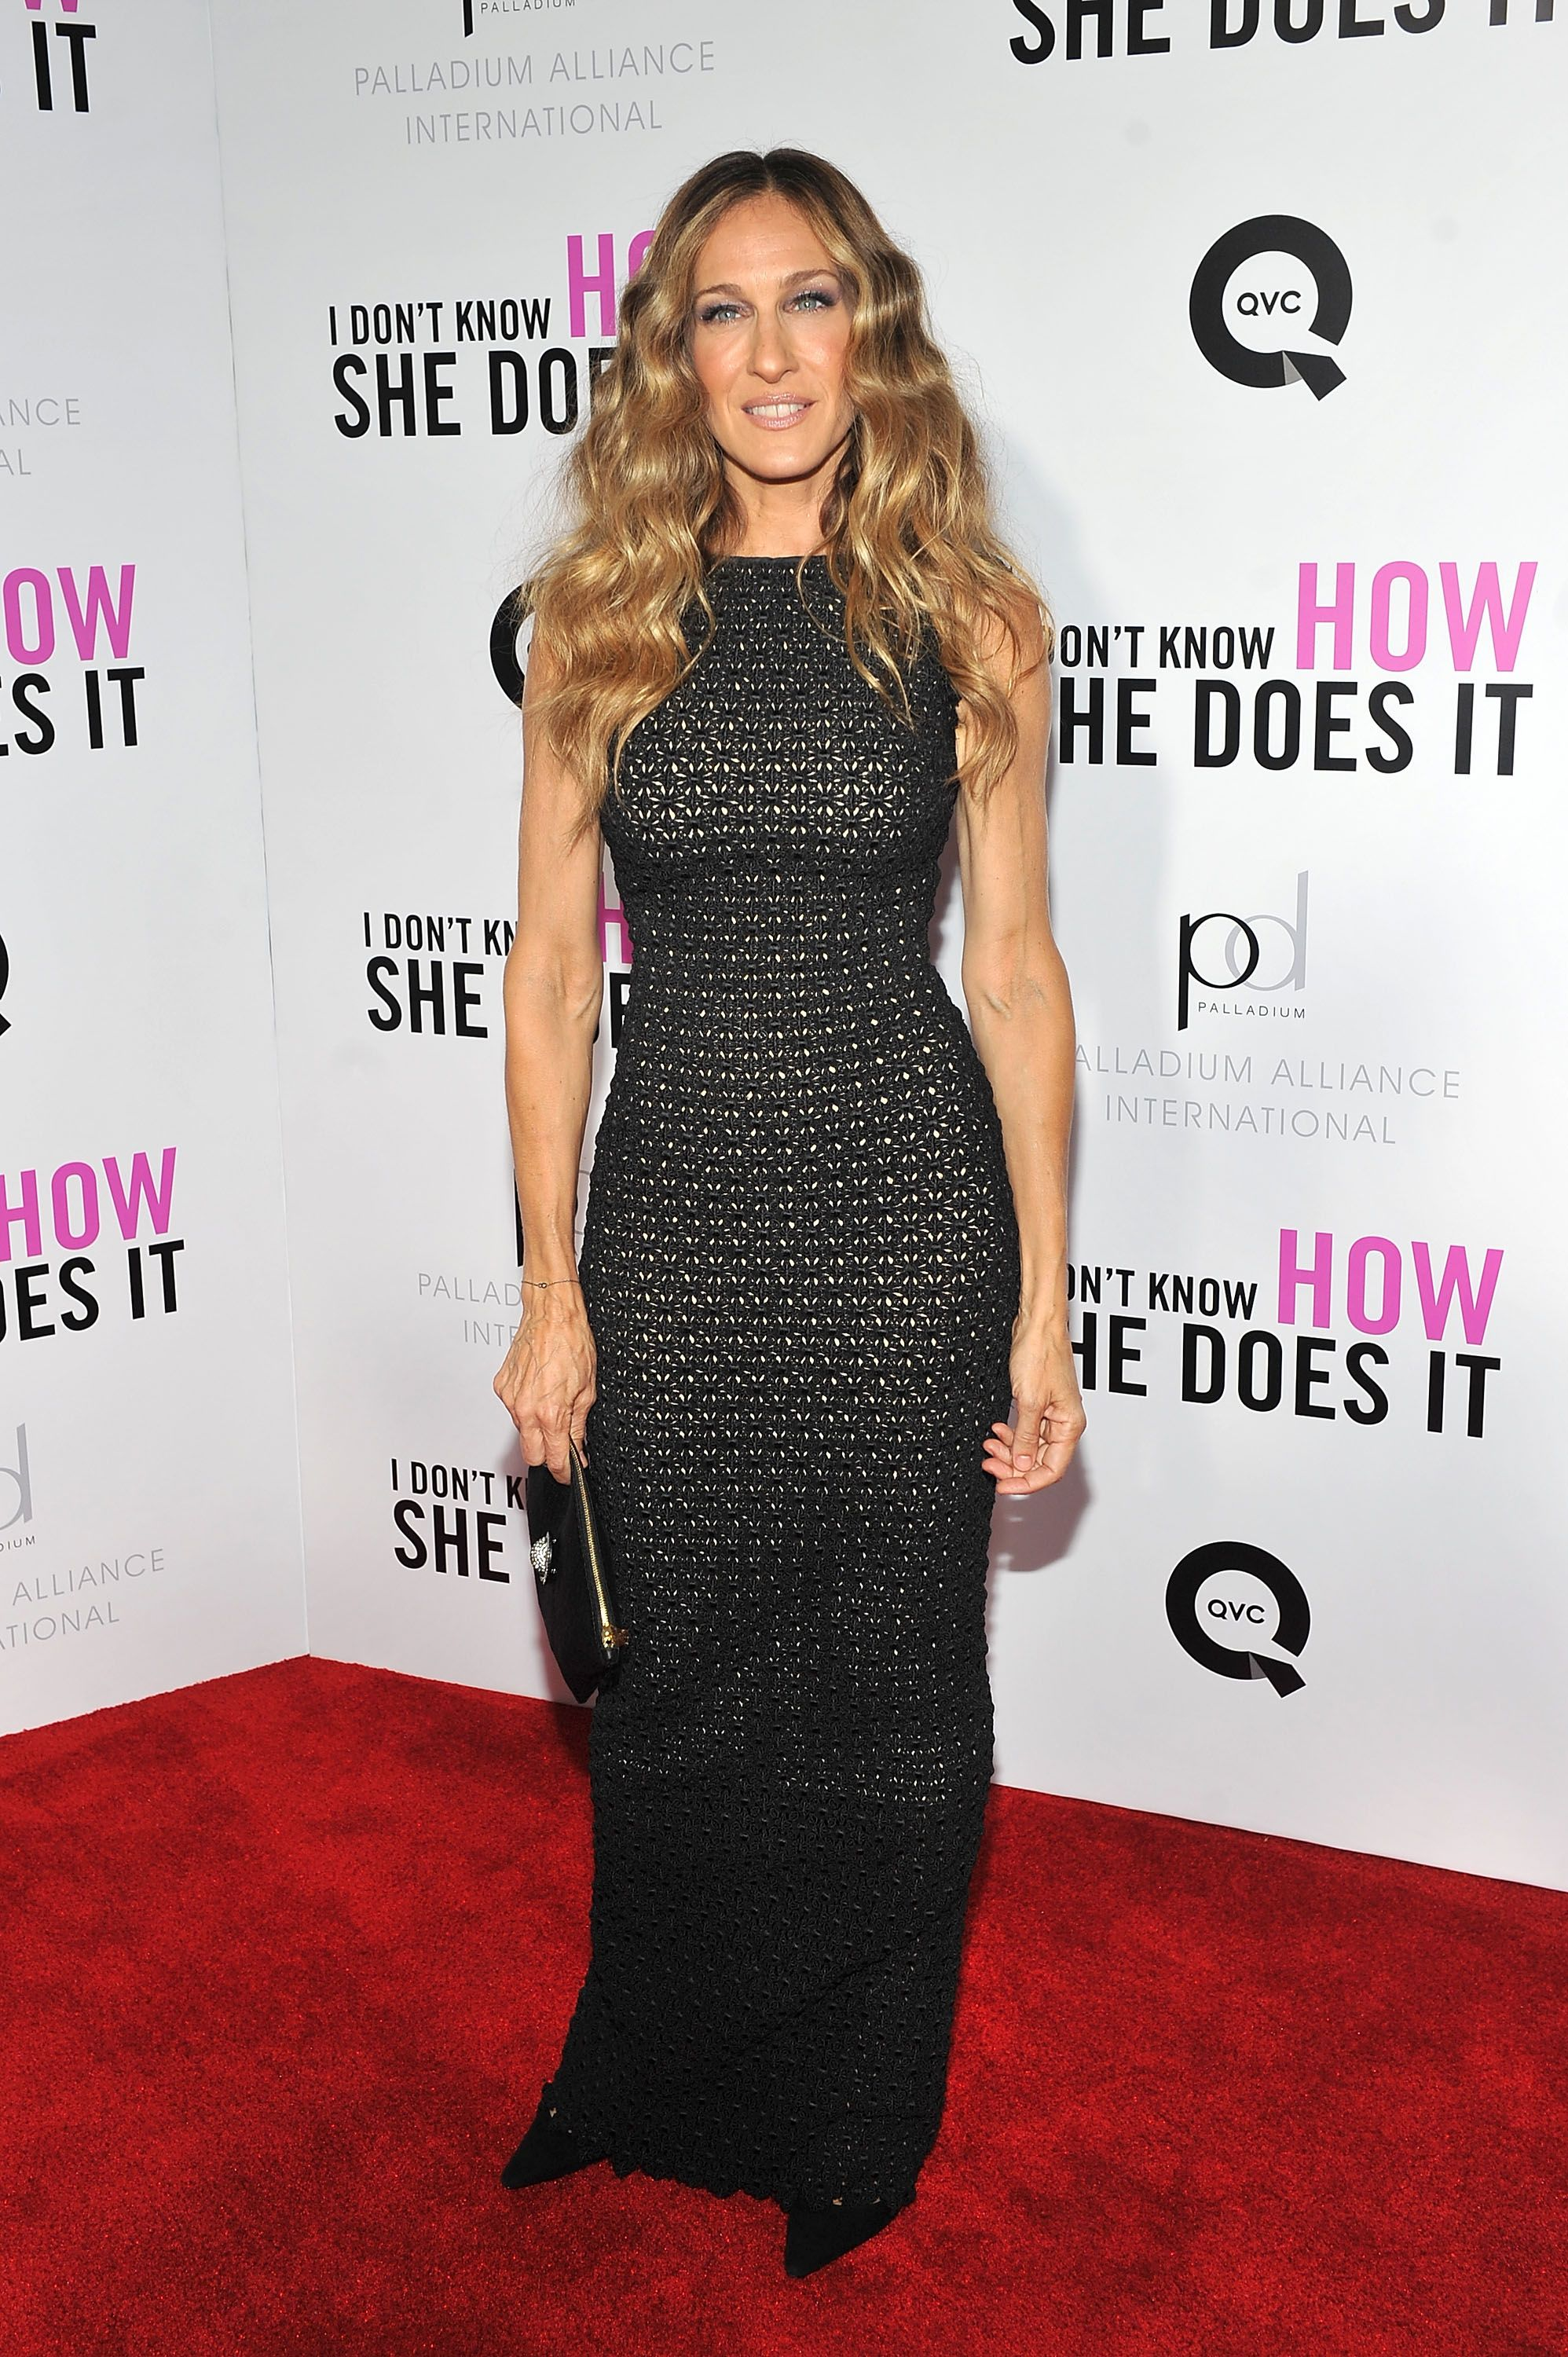 c09cff93543 sarah jessica parker body - Google Search